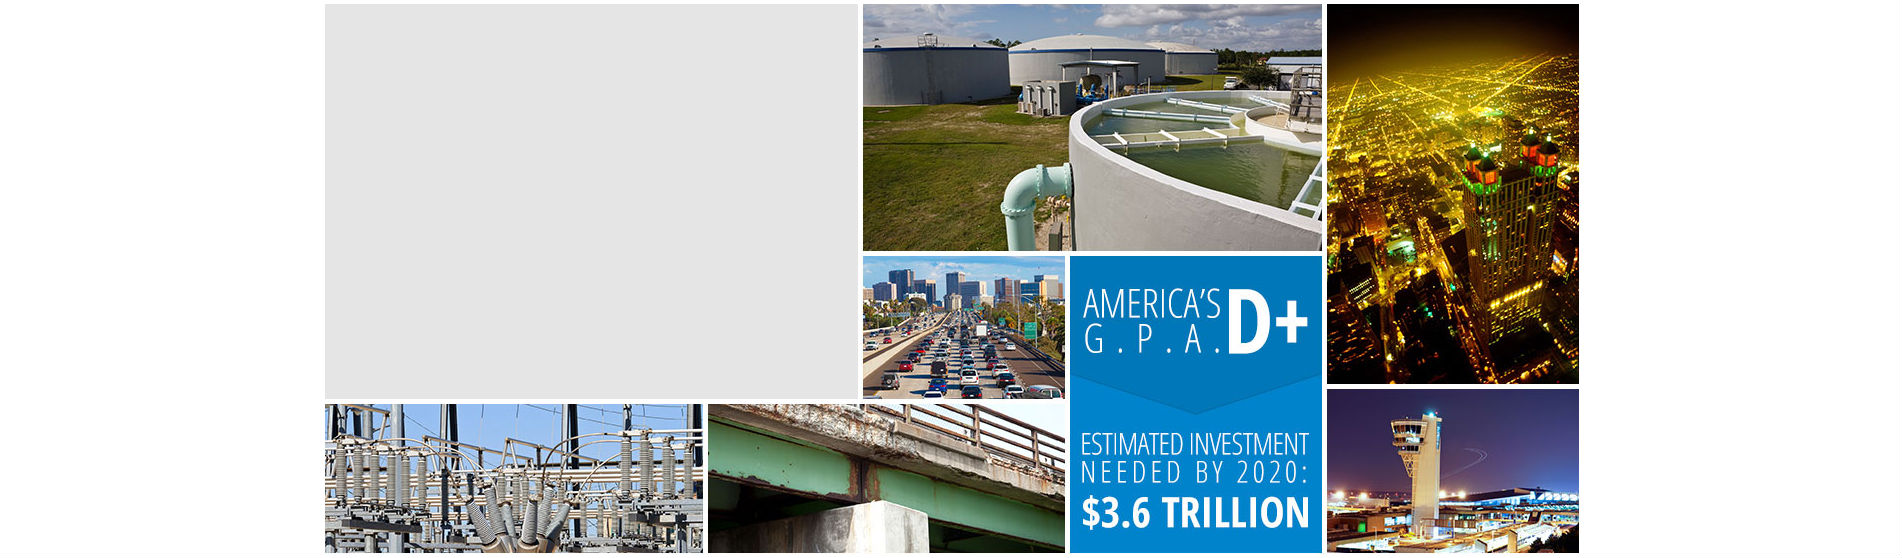 2013 Report Card for Americas Infrastructure